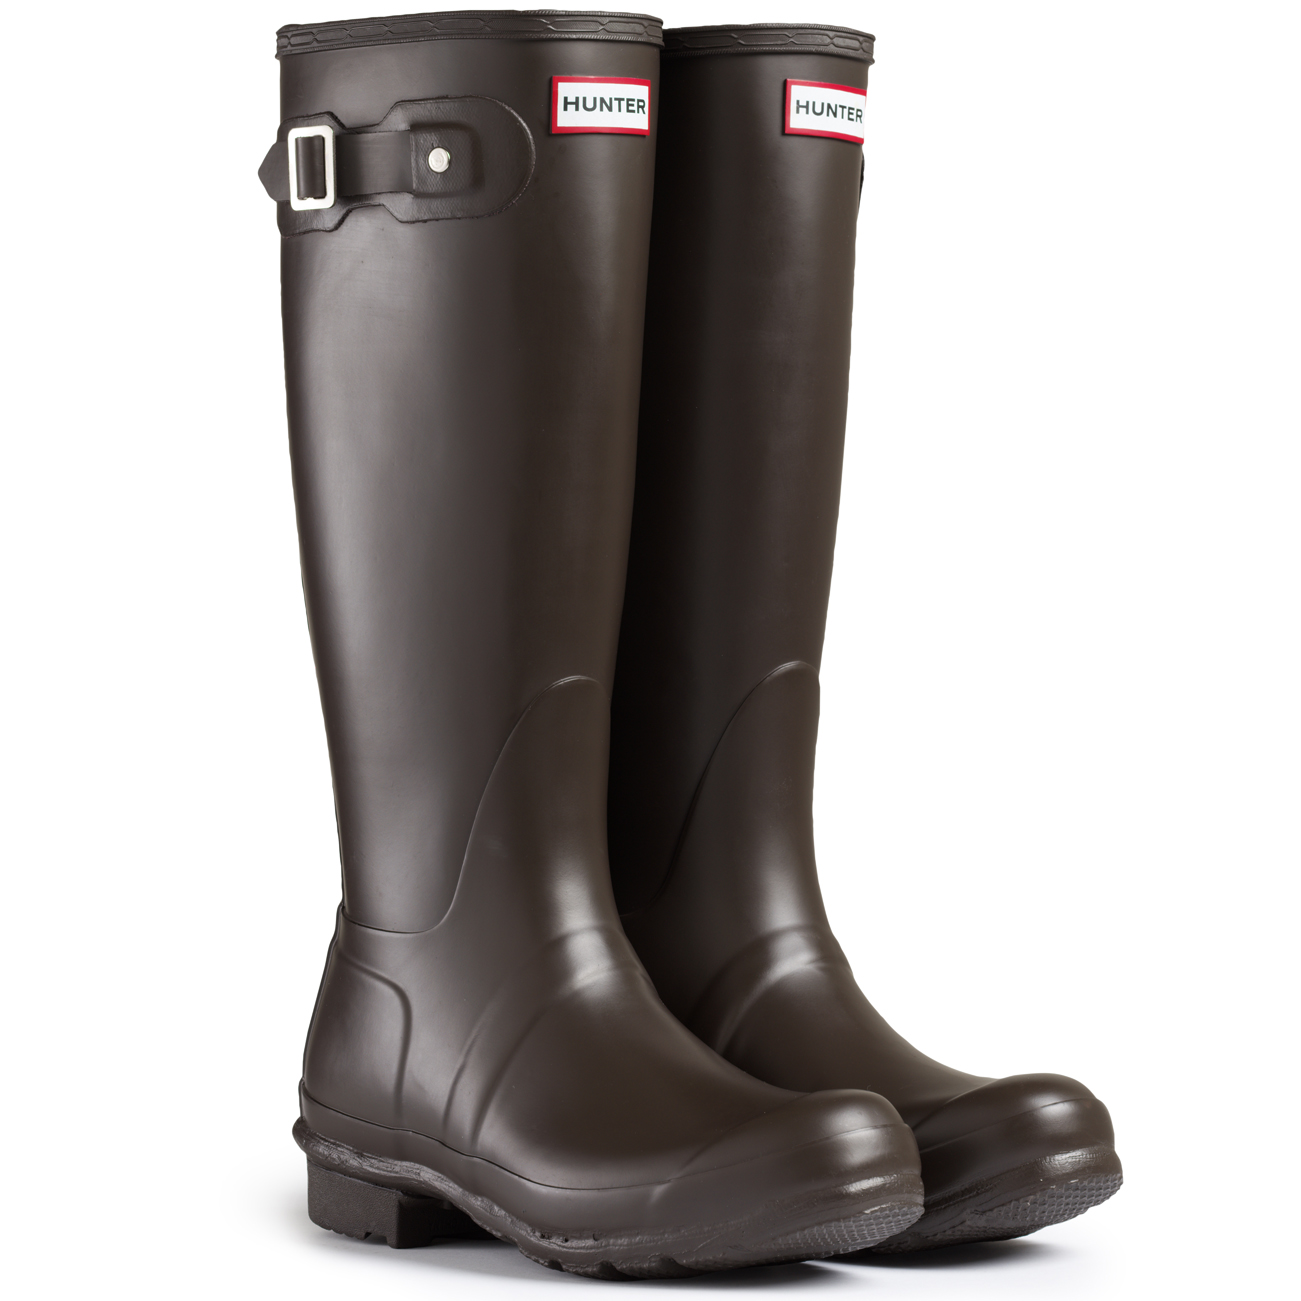 Unique WOMENS HUNTER WELLINGTON BOOTS ORIGINAL SHORT RAIN SNOW WELLIES LADIES UK 3-8 | EBay